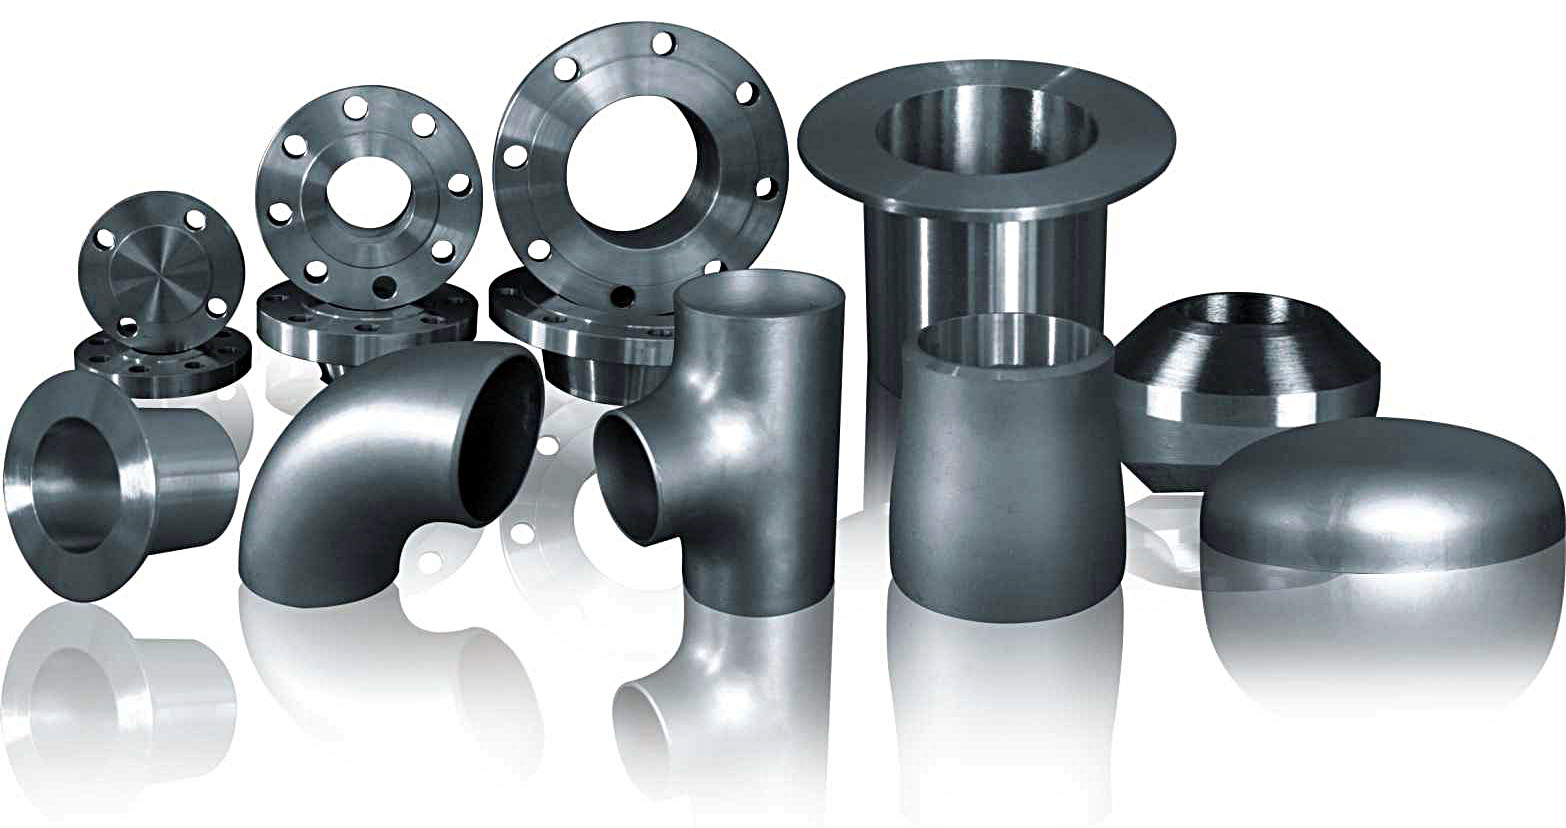 Flanged Pipe Fittings : Pt multicapital sarana utama fitting pipe indonesia